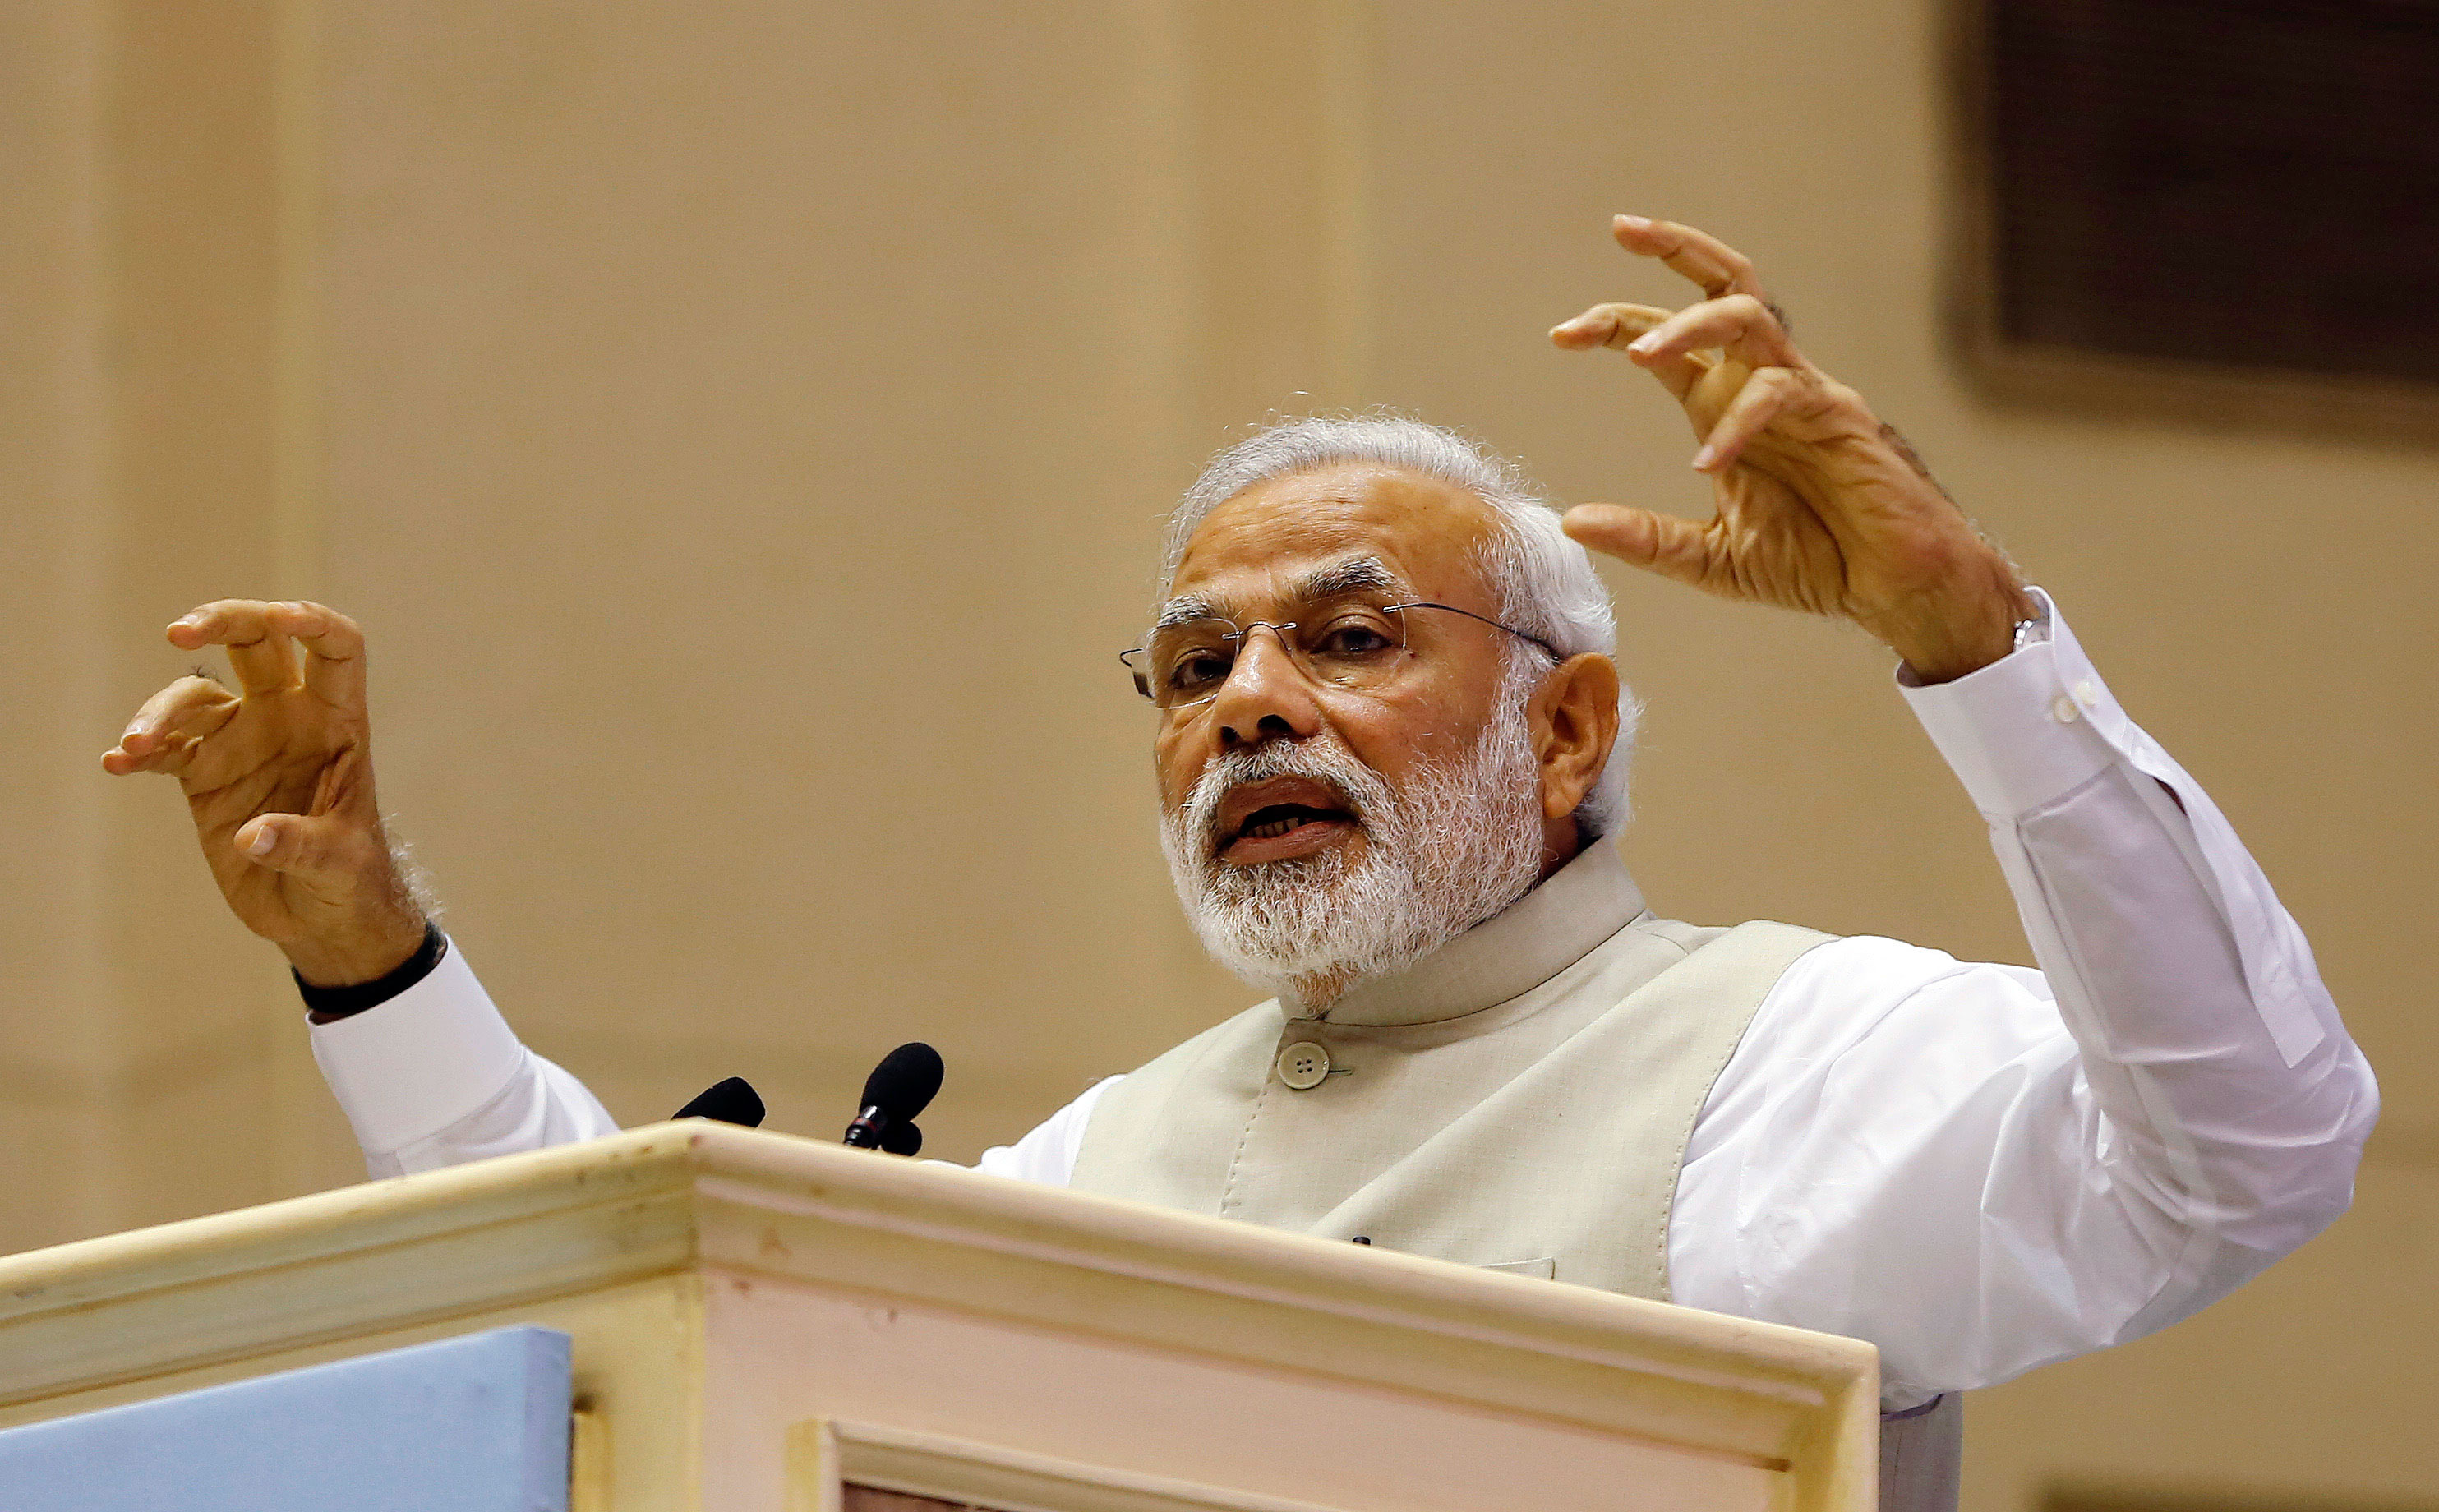 #ModiYearOne: PE & VC investments rocket in India in the last one year